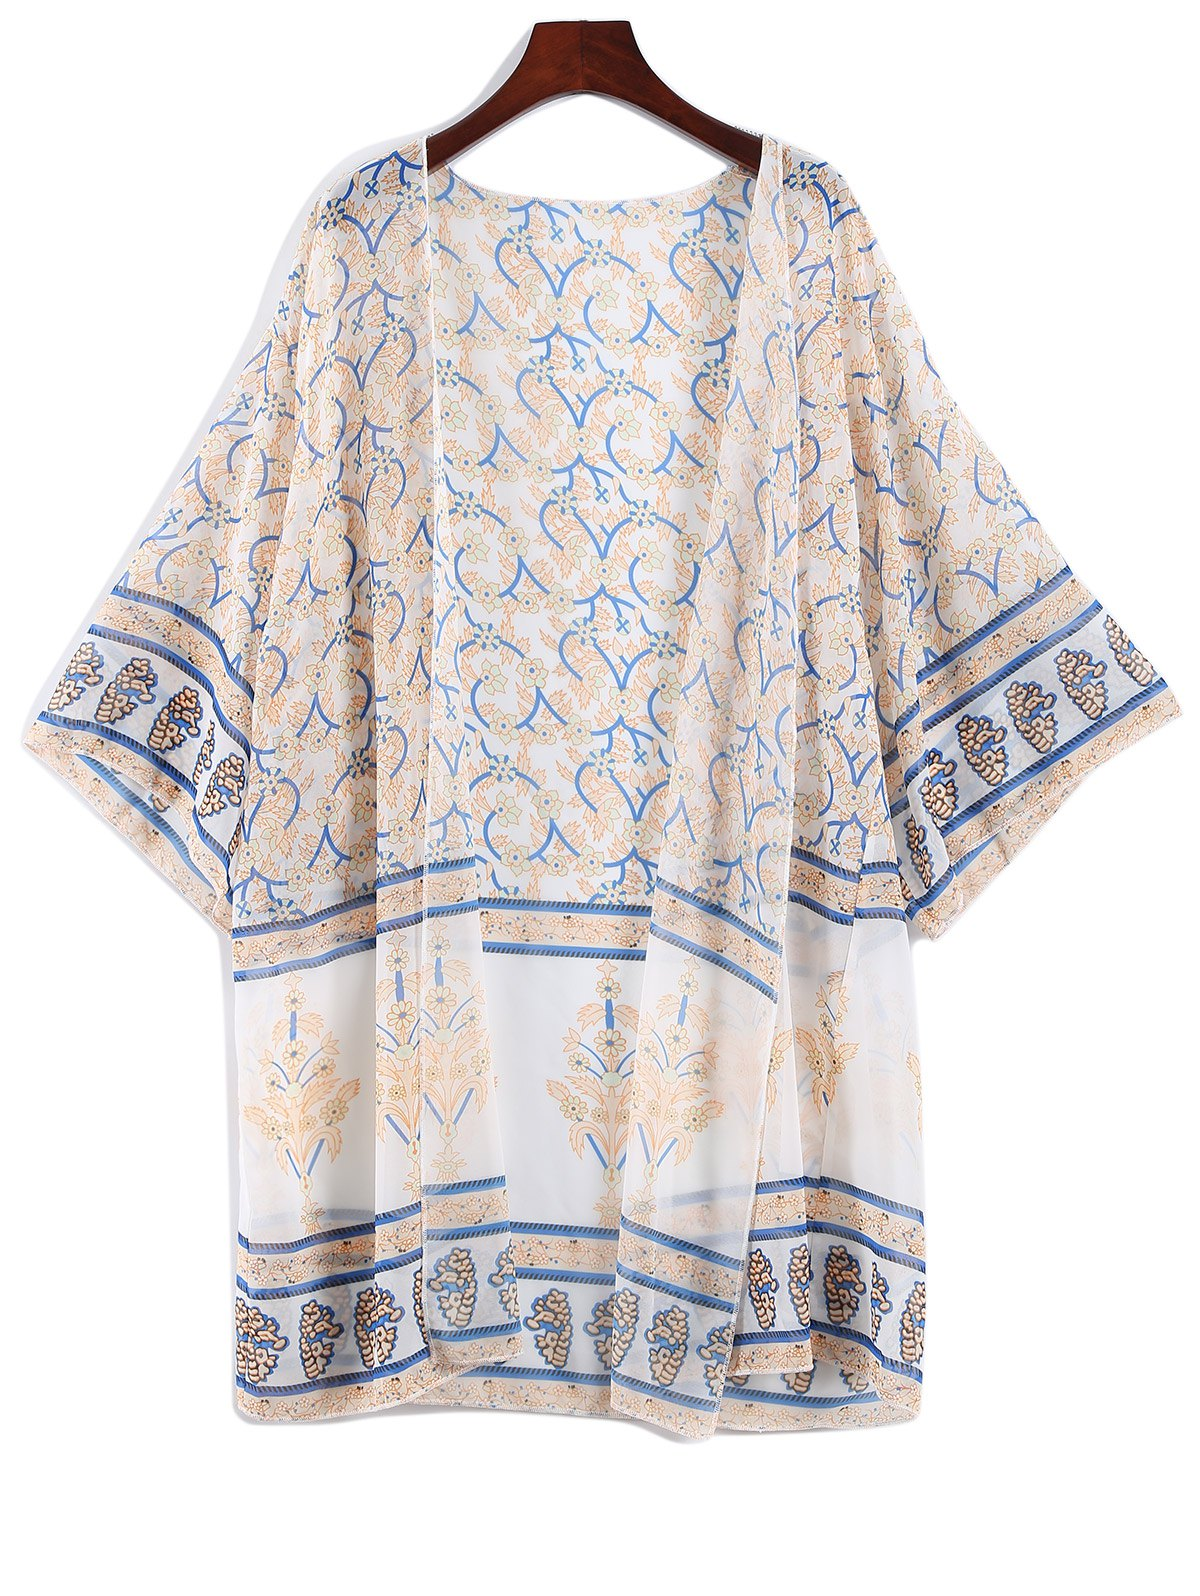 Bohemian Printed Chiffon Cover Up